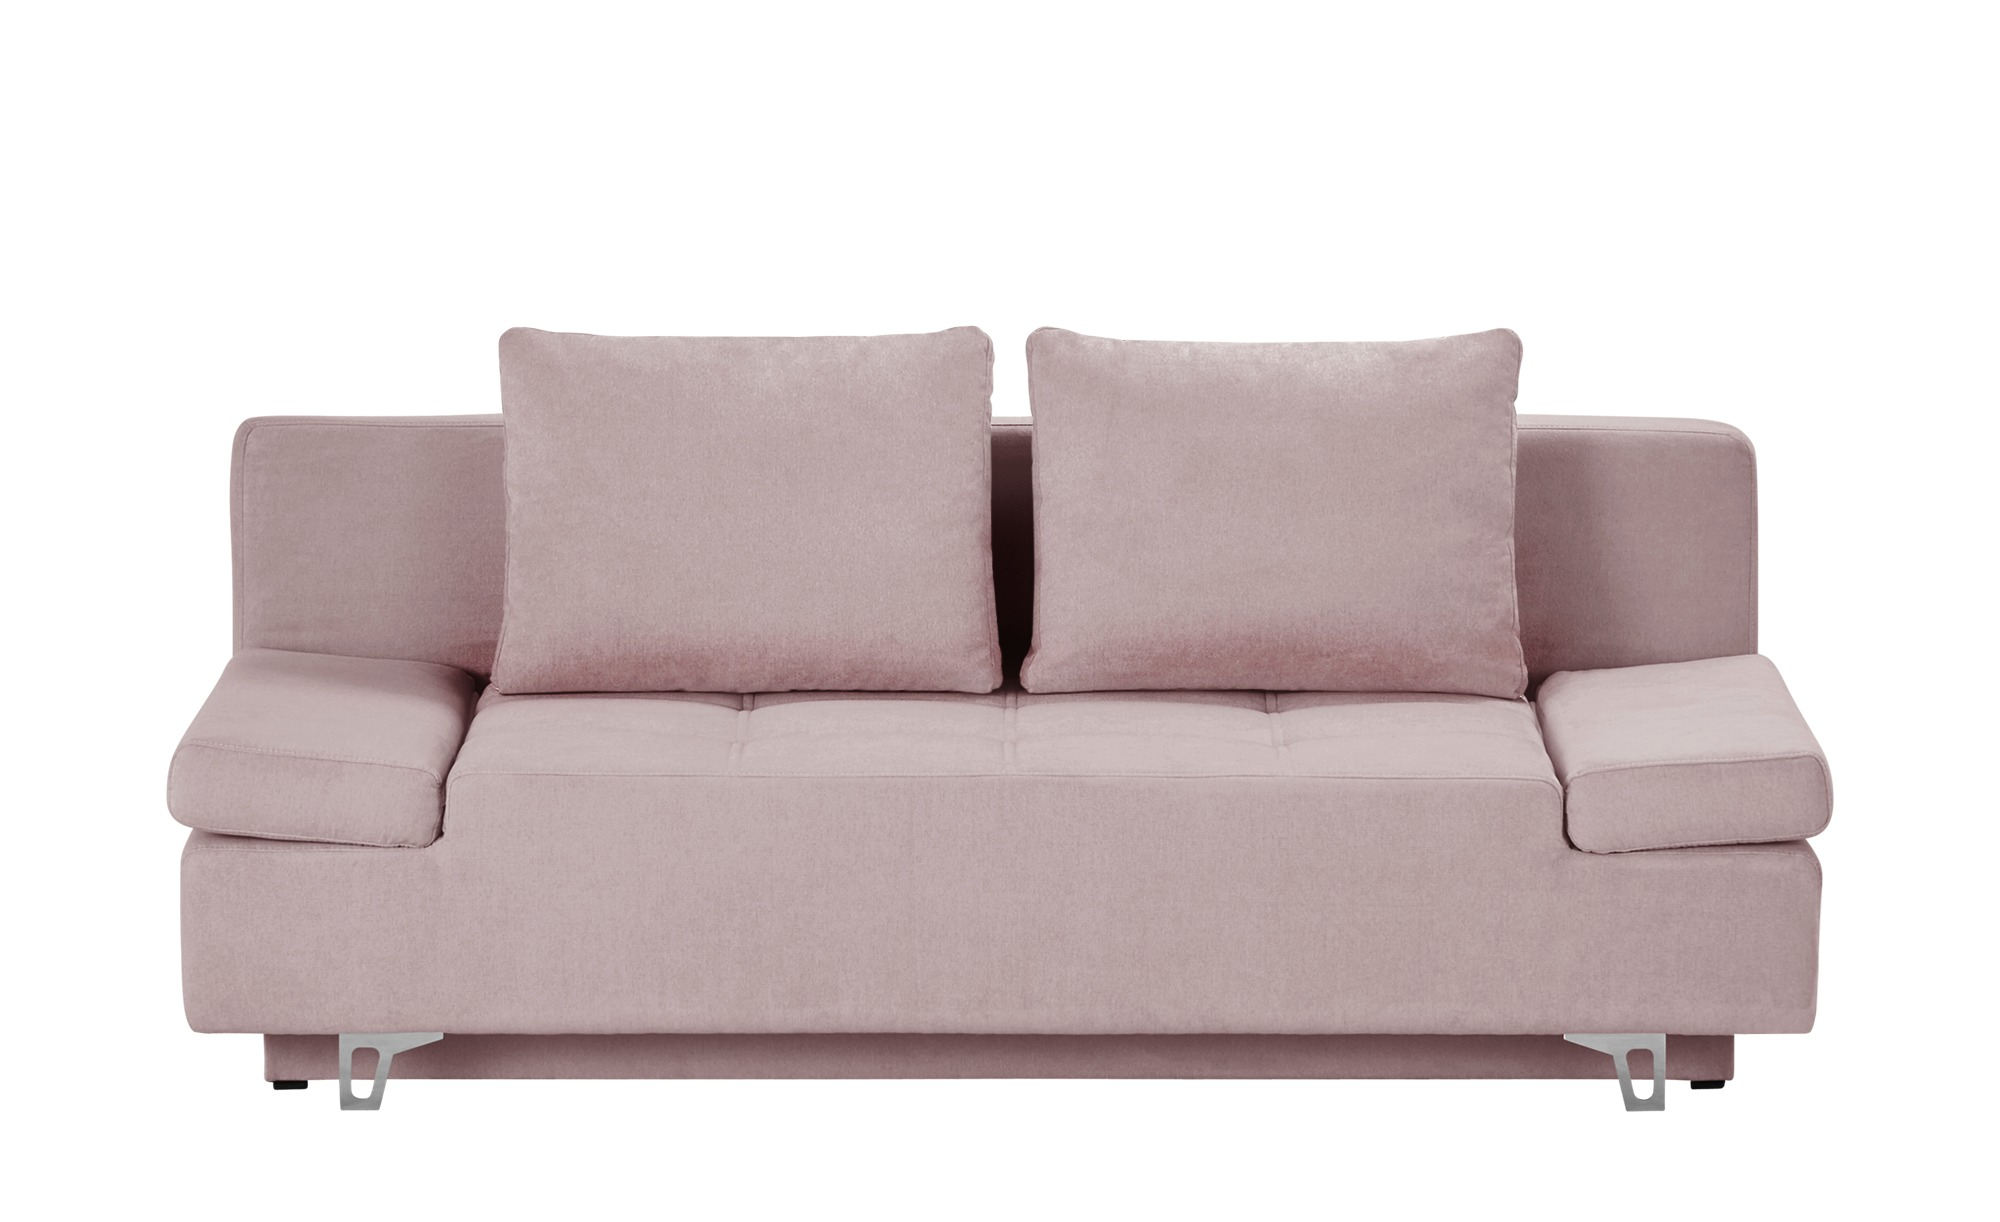 smart schlafsofa patriece breite 200 cm h he 90 cm rosa. Black Bedroom Furniture Sets. Home Design Ideas